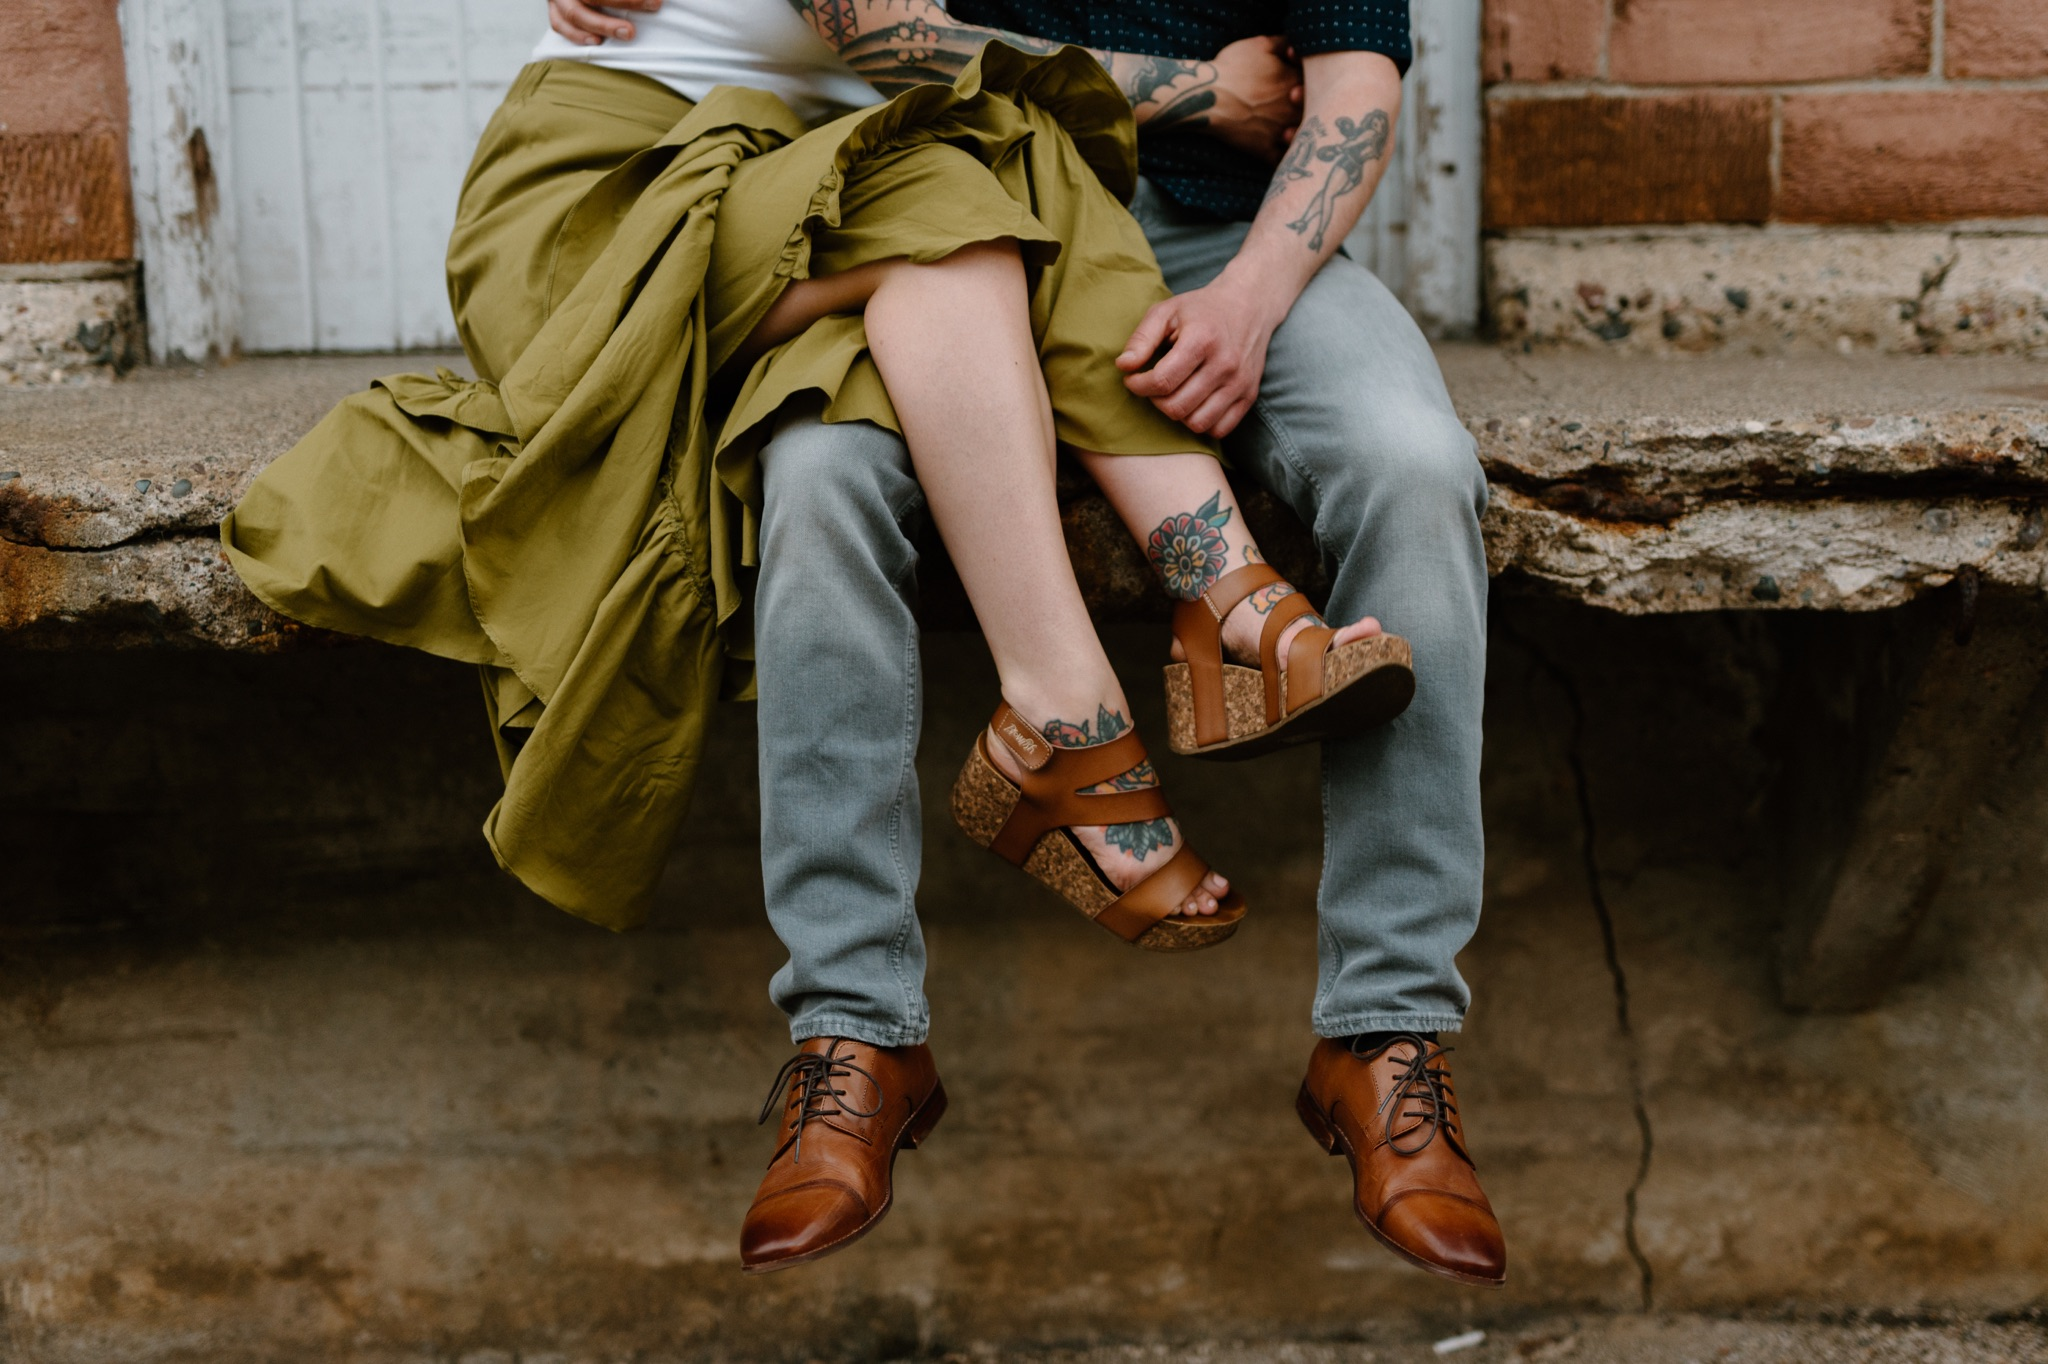 man and woman sitting down and woman has her legs crossed over man's legs